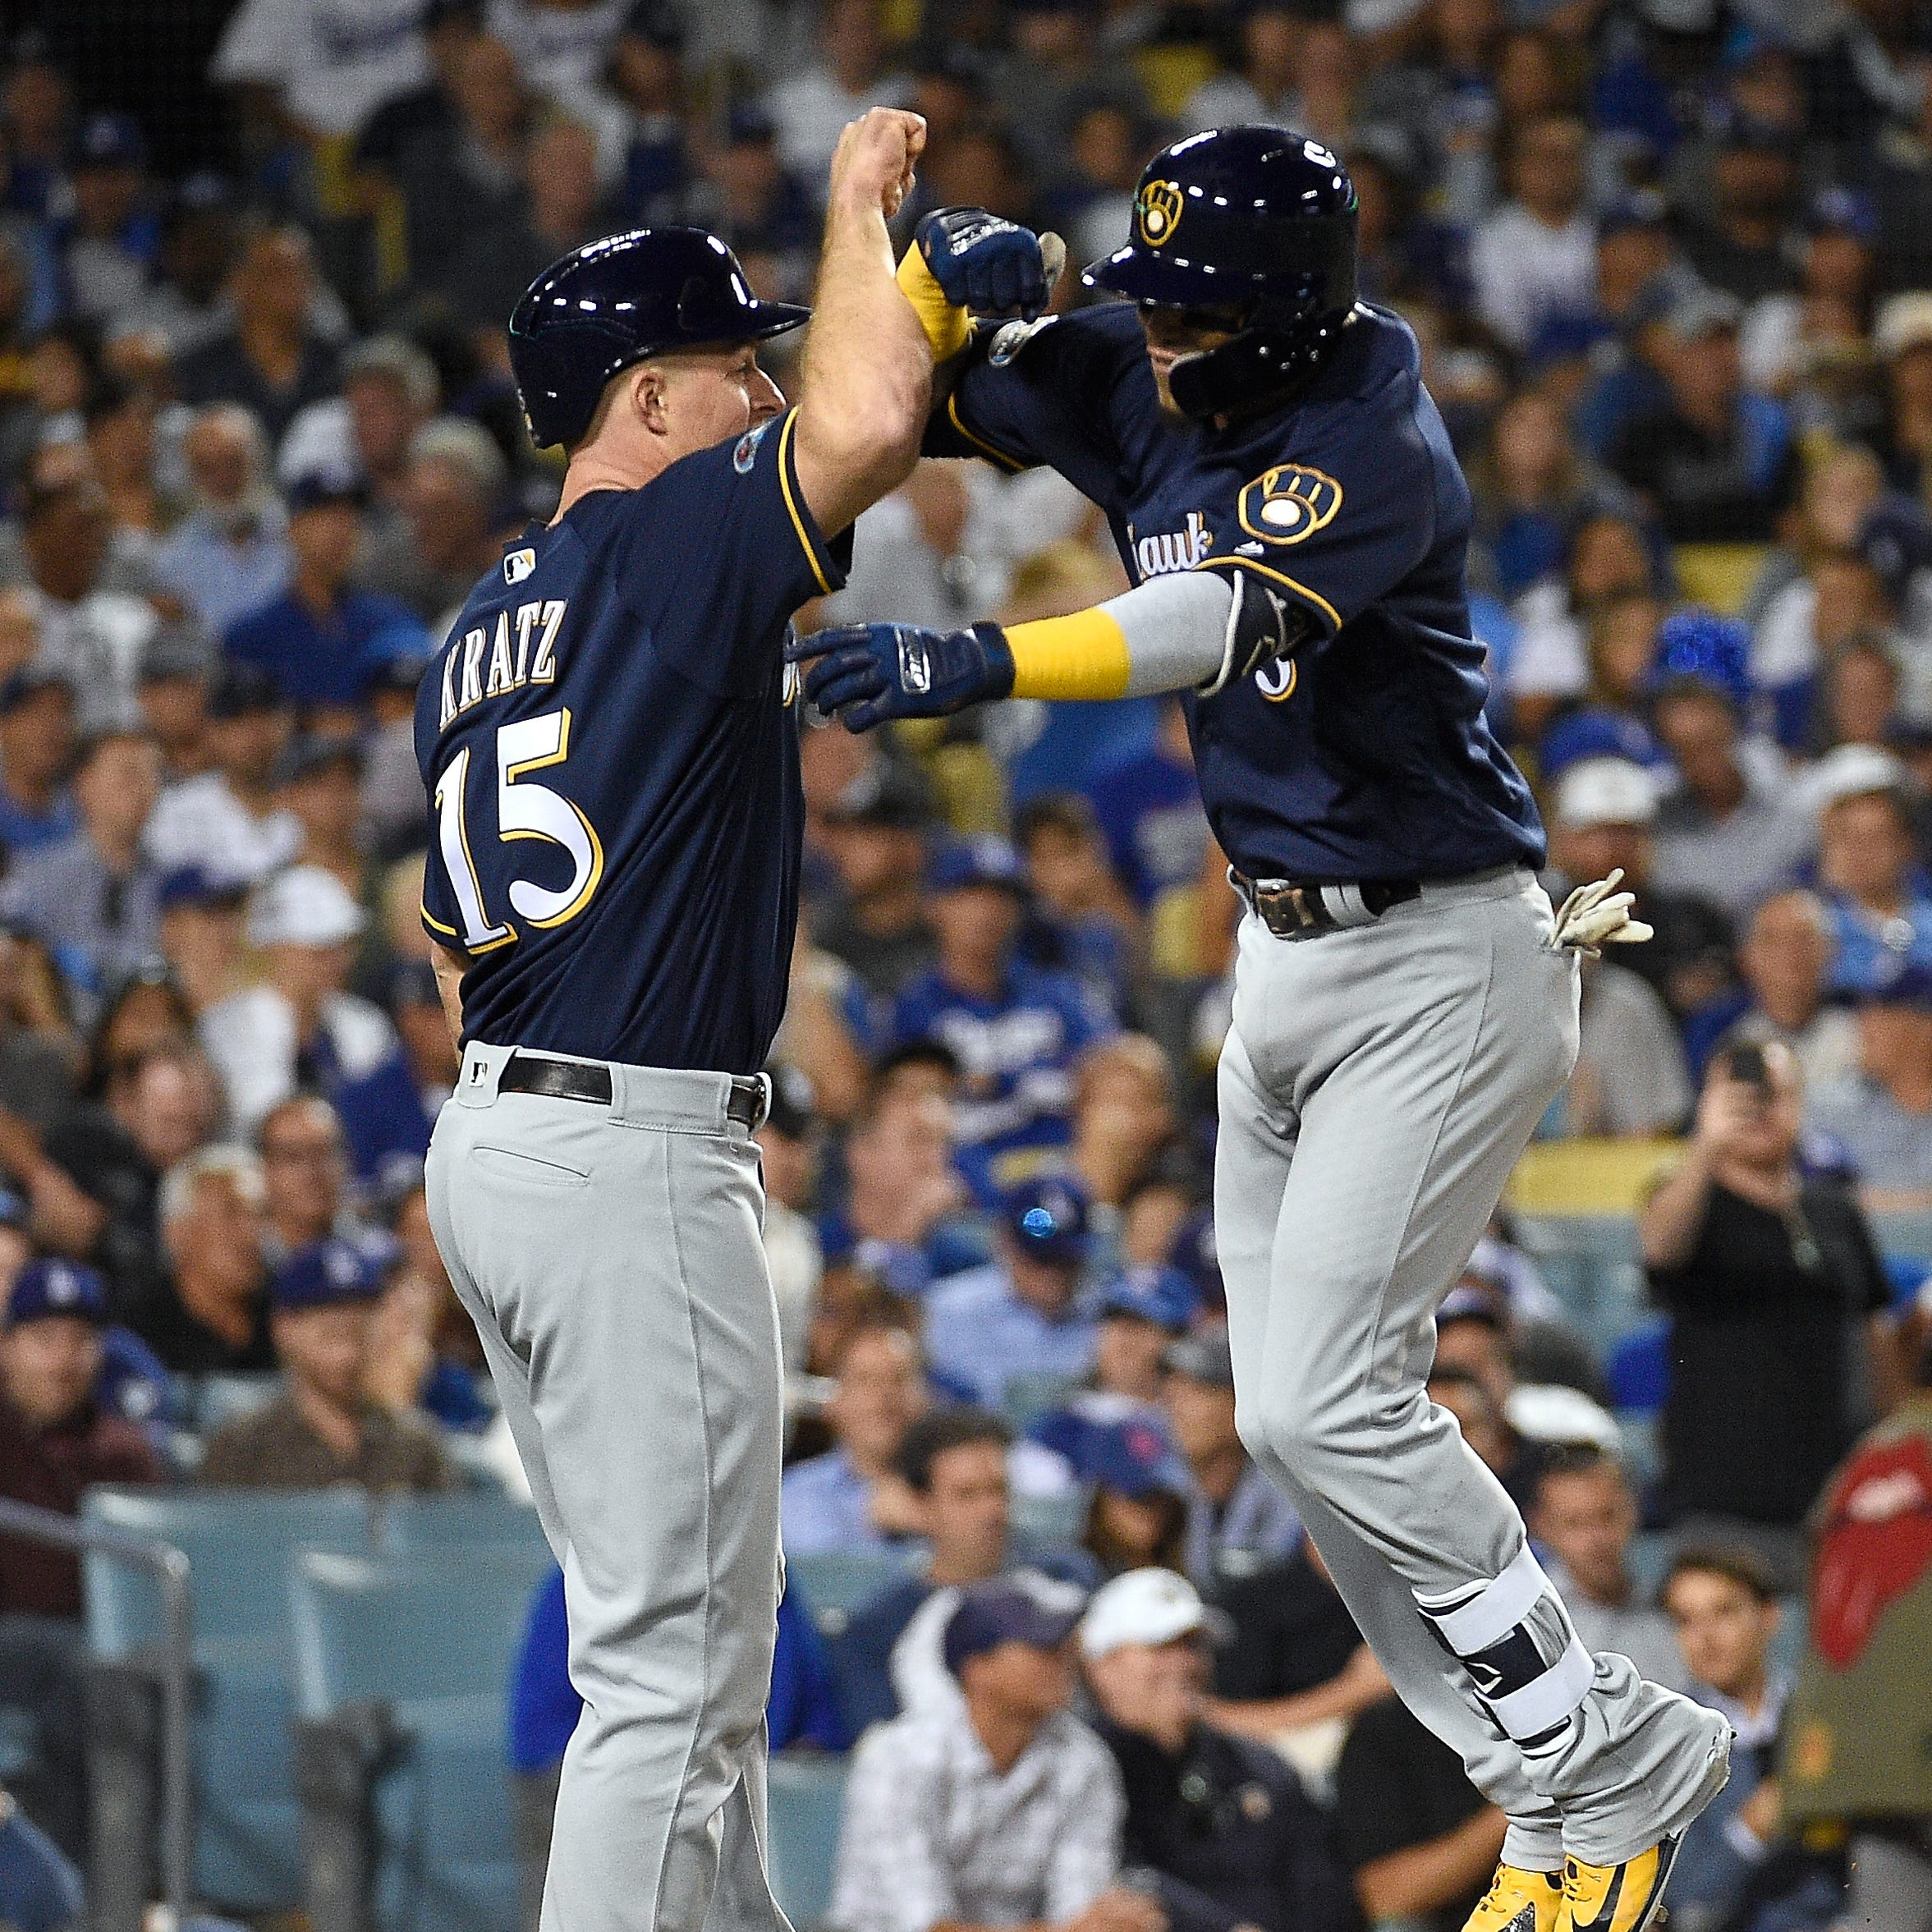 Brewers 4, Dodgers 0: A narrow escape for another shutout